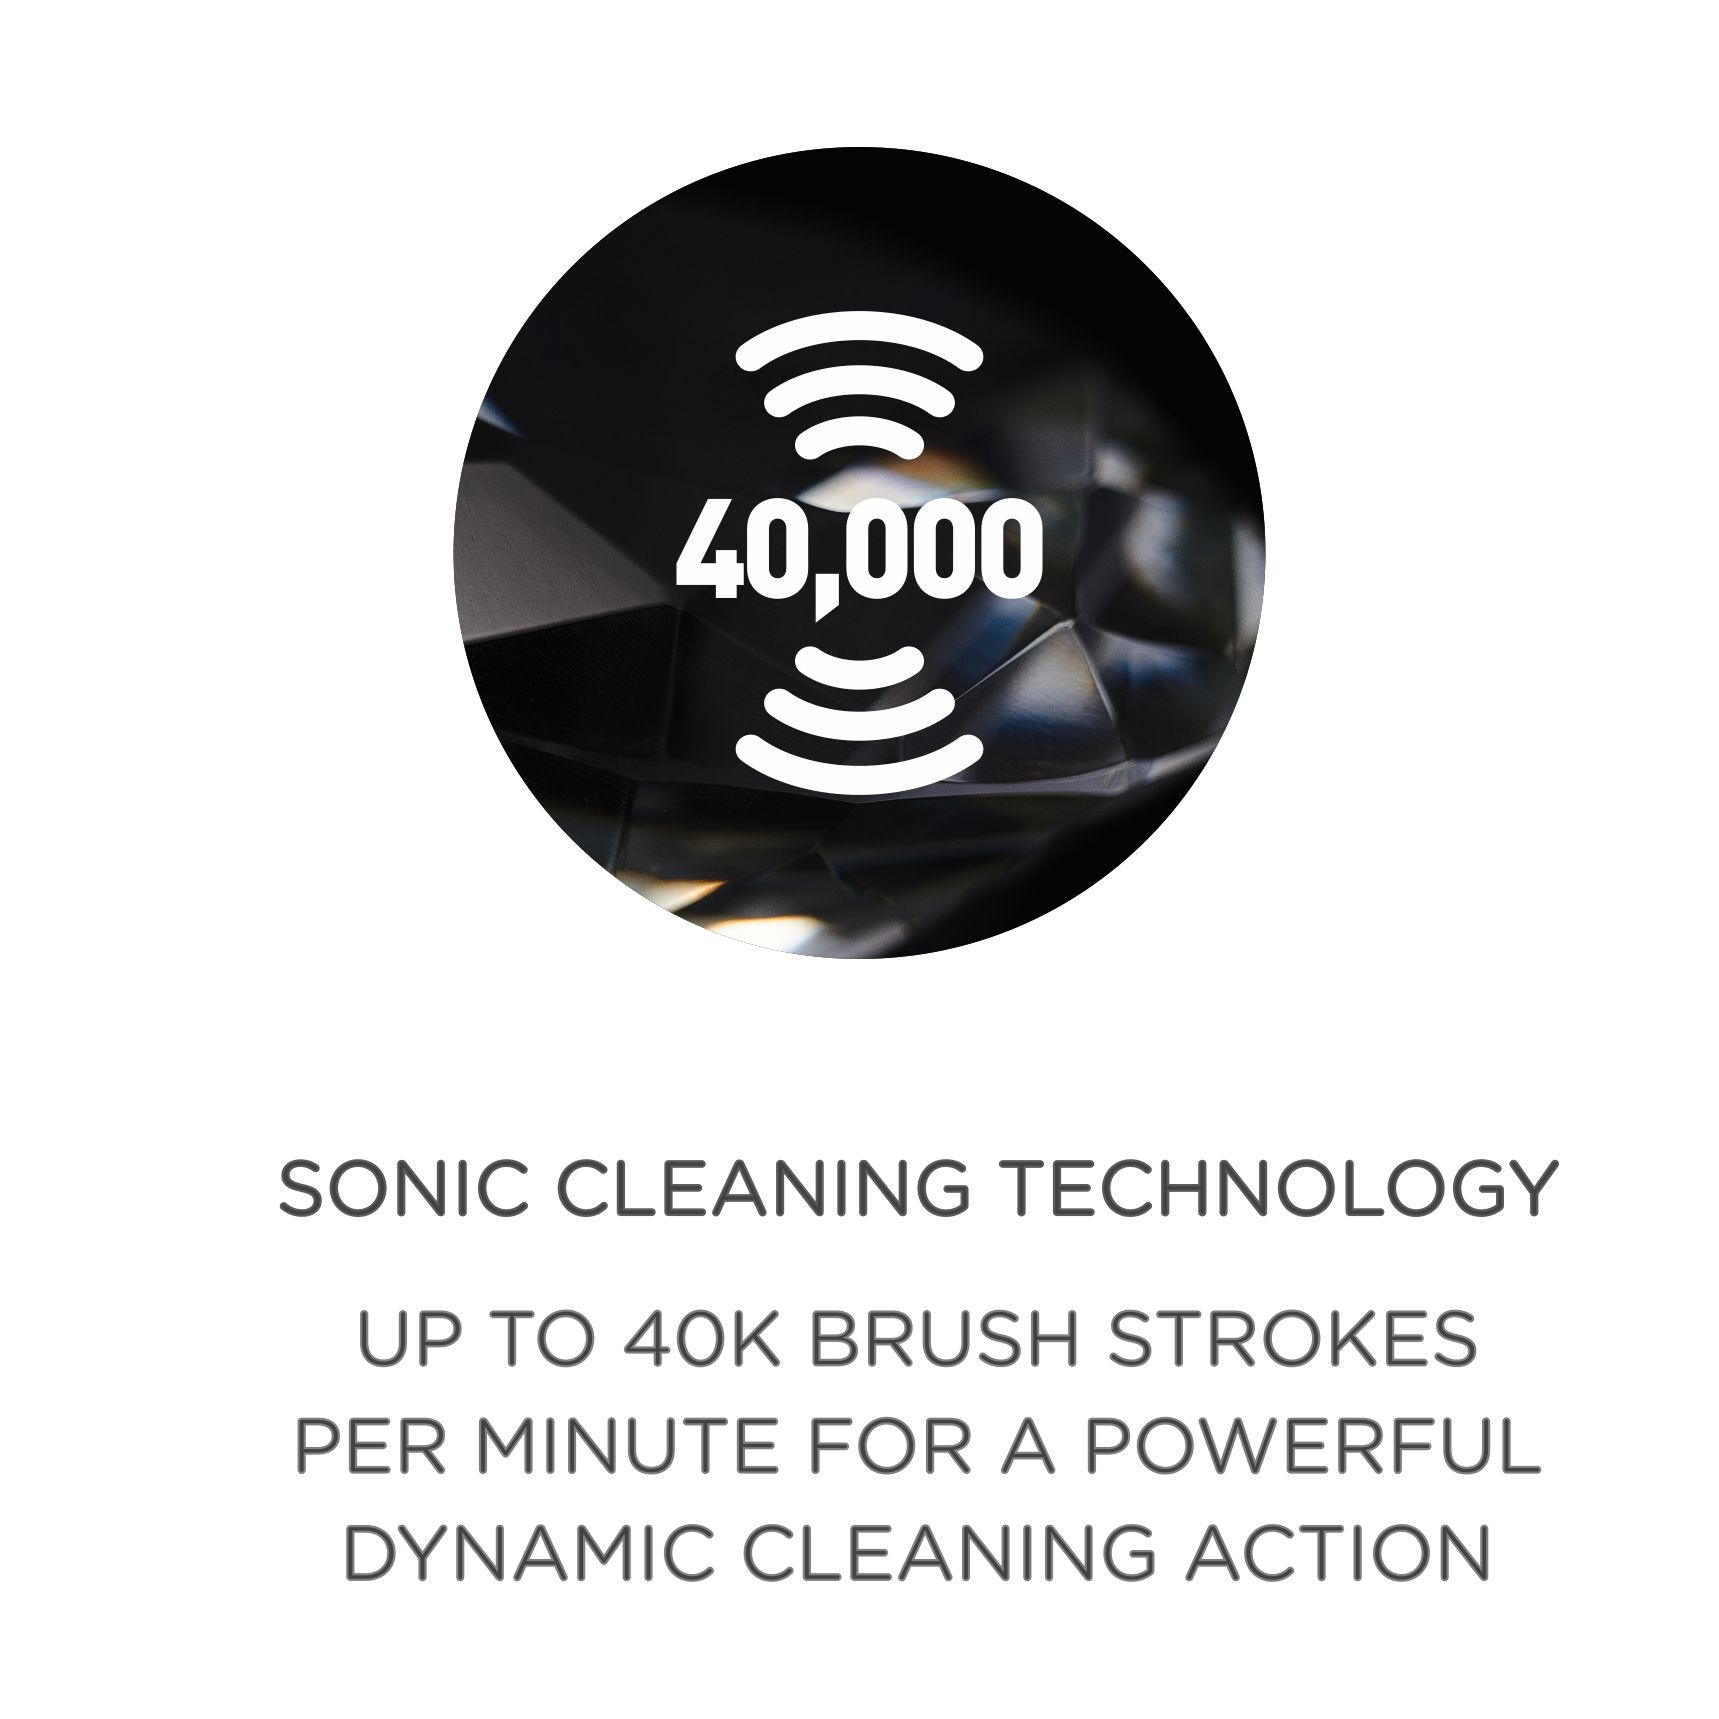 Toothbrush Sonic Cleaning Technology Icon